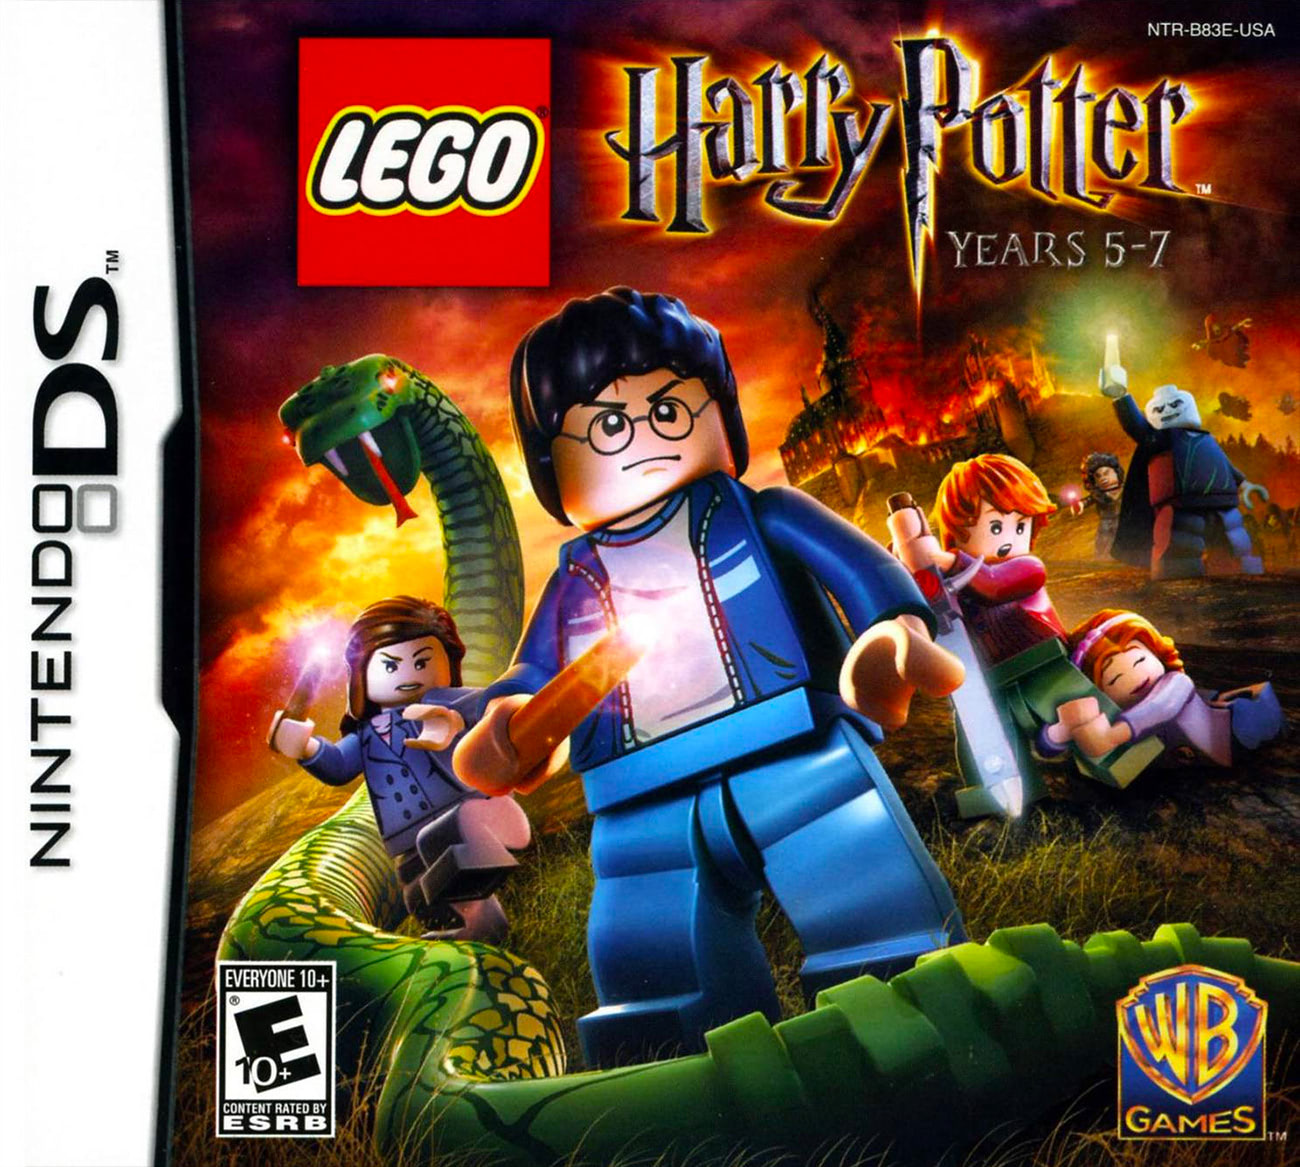 'LEGO Harry Potter: Years 5-7' video game